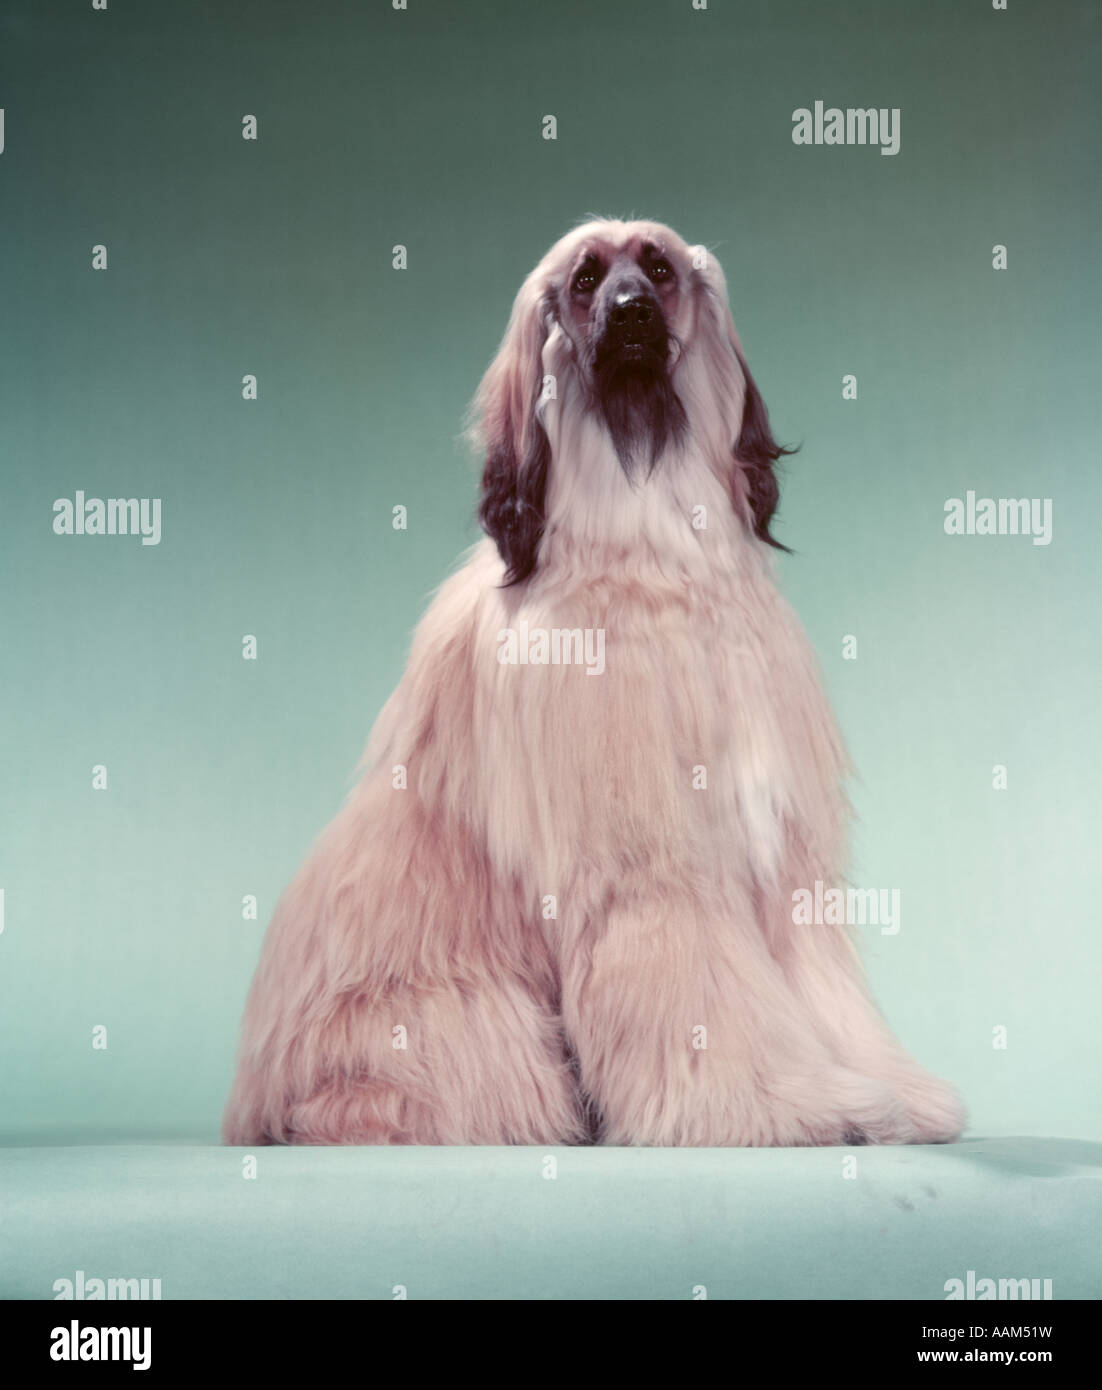 AFGHANS HOUND - Stock Image